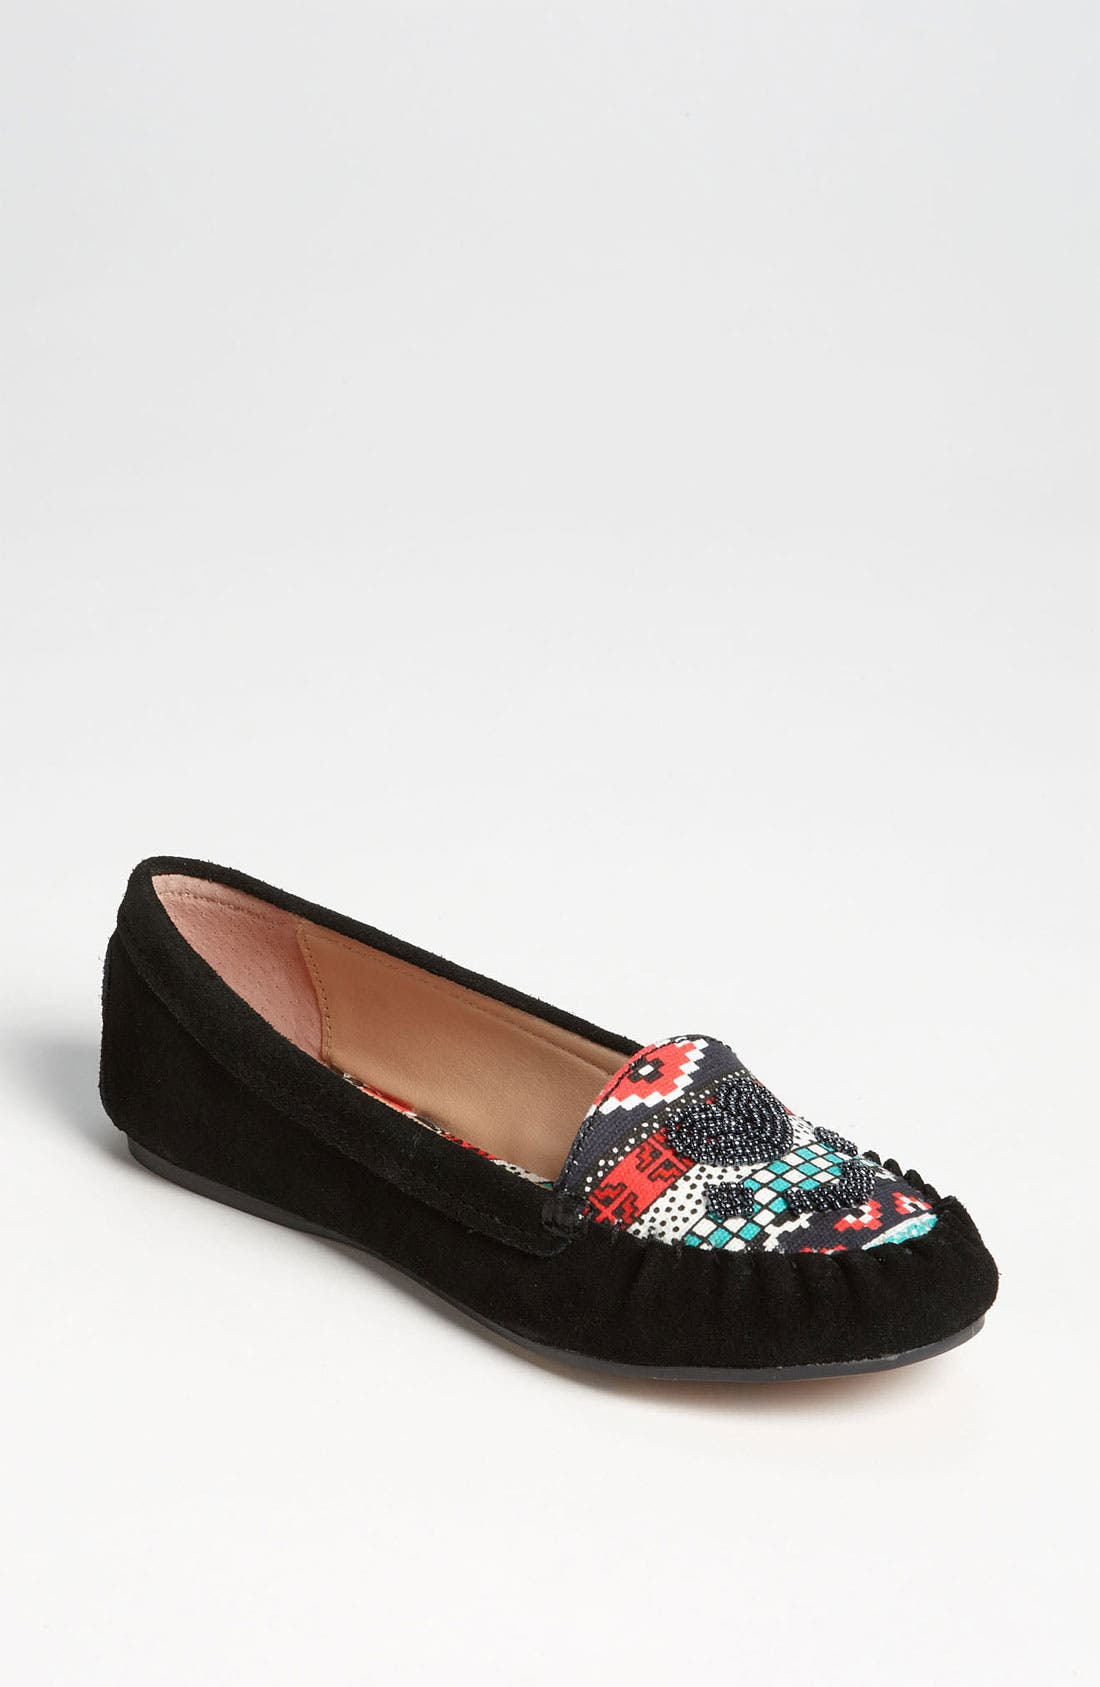 Main Image - Betsey Johnson 'Mayhemm' Flat